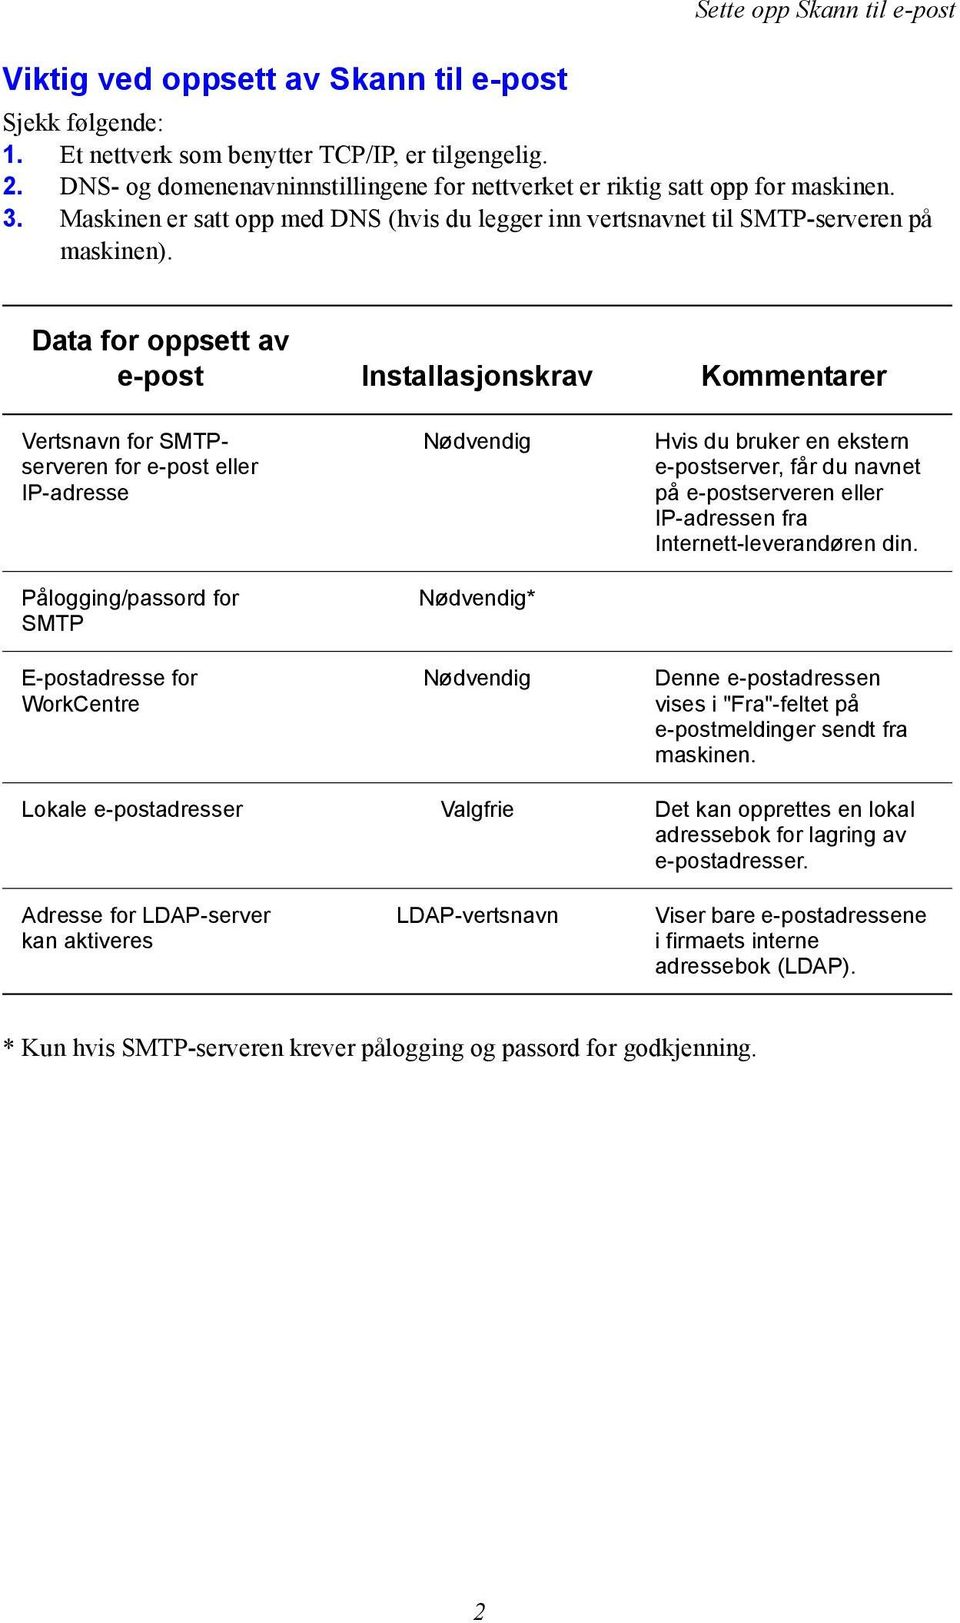 Data for oppsett av e-post Installasjonskrav Kommentarer Vertsnavn for SMTPserveren for e-post eller IP-adresse Pålogging/passord for SMTP E-postadresse for WorkCentre Nødvendig Nødvendig* Nødvendig